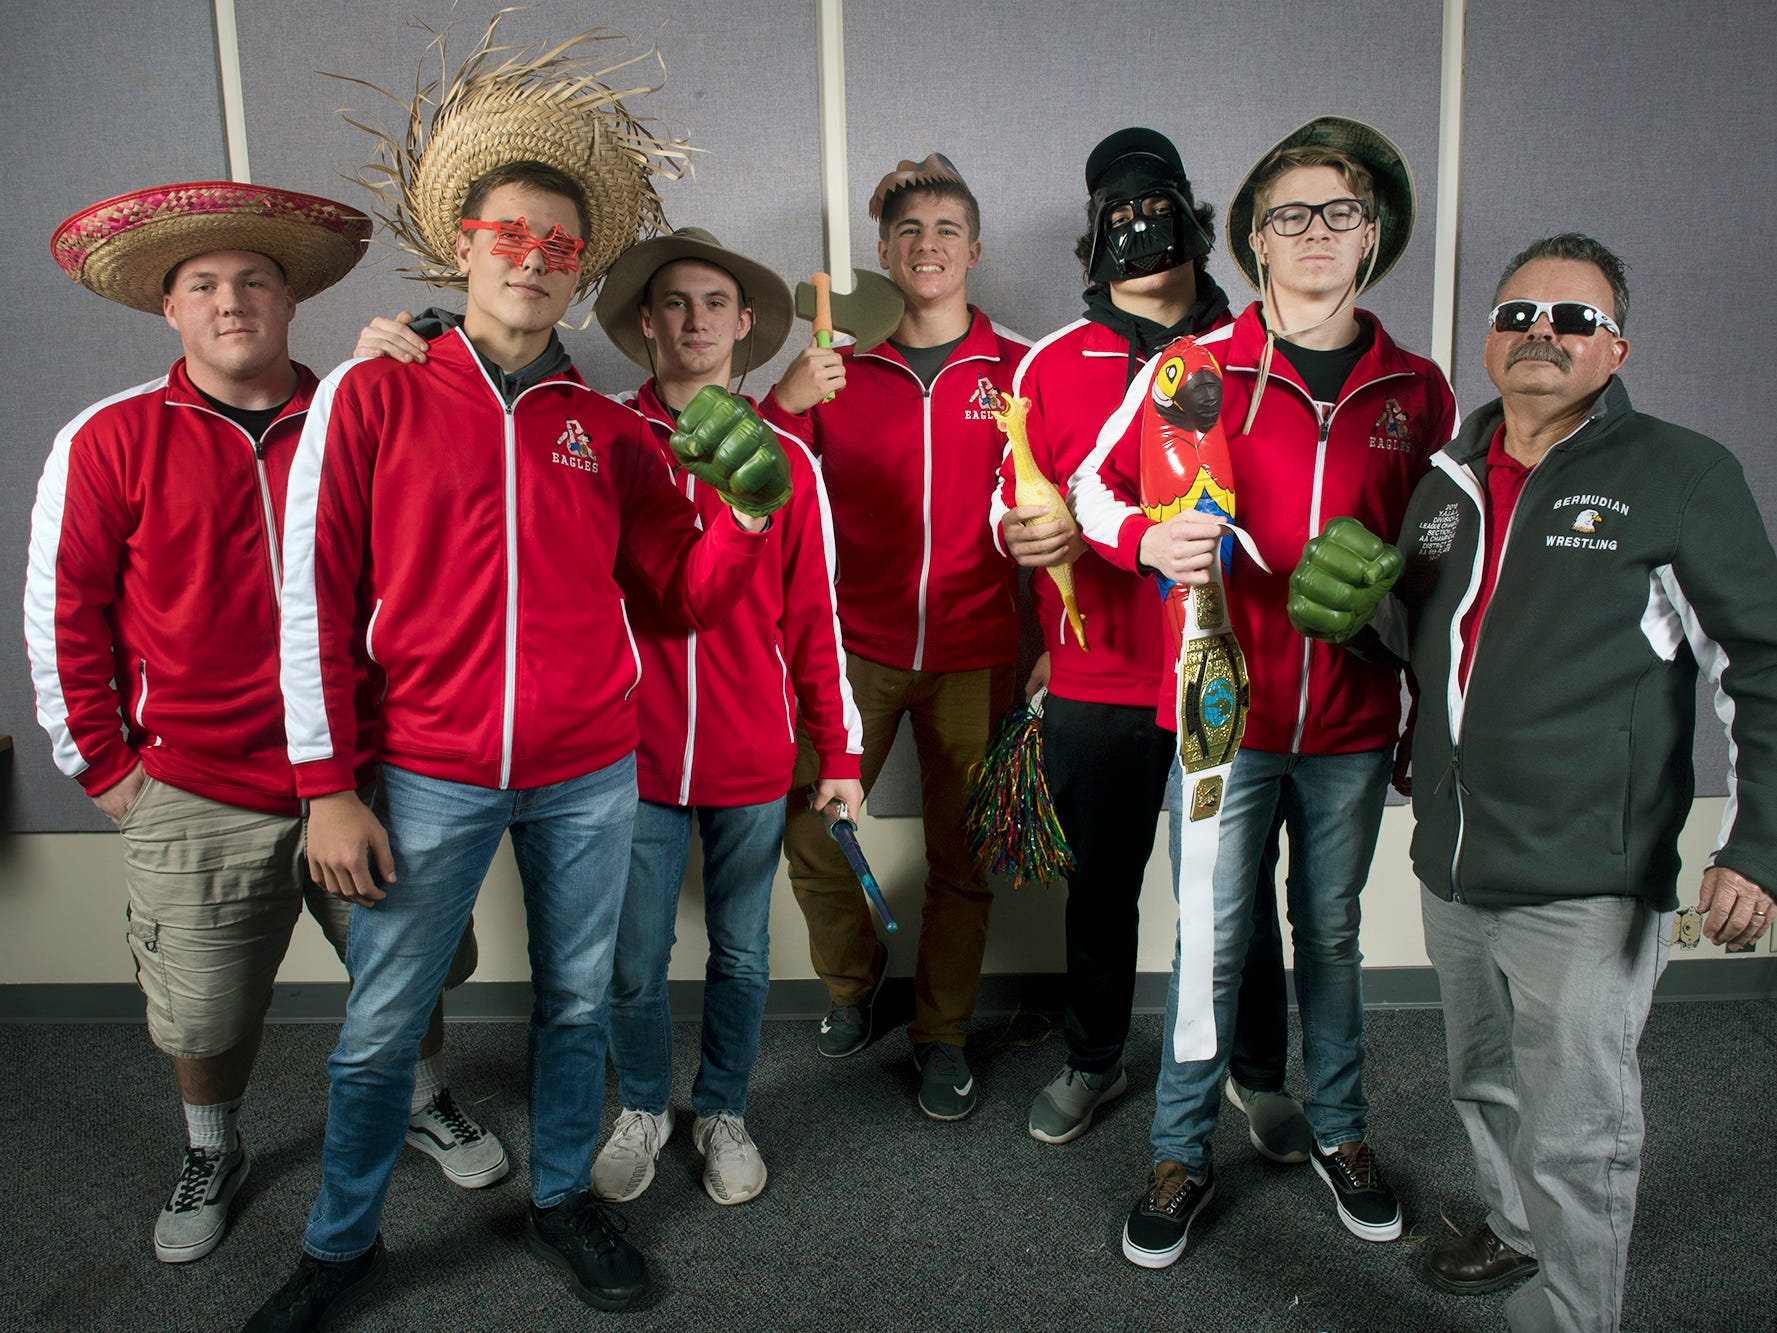 From the left, Ryan Lauver, Trace Grim, Tyler Rawson, Nate McCollum, Chase Dull, Tanner Althoff and Coach Dave McCollum, of the Bermudian Springs High School wrestling team, pose during the 2018-19 GameTimePa YAIAA Winter Media Day Sunday November 11, 2018.